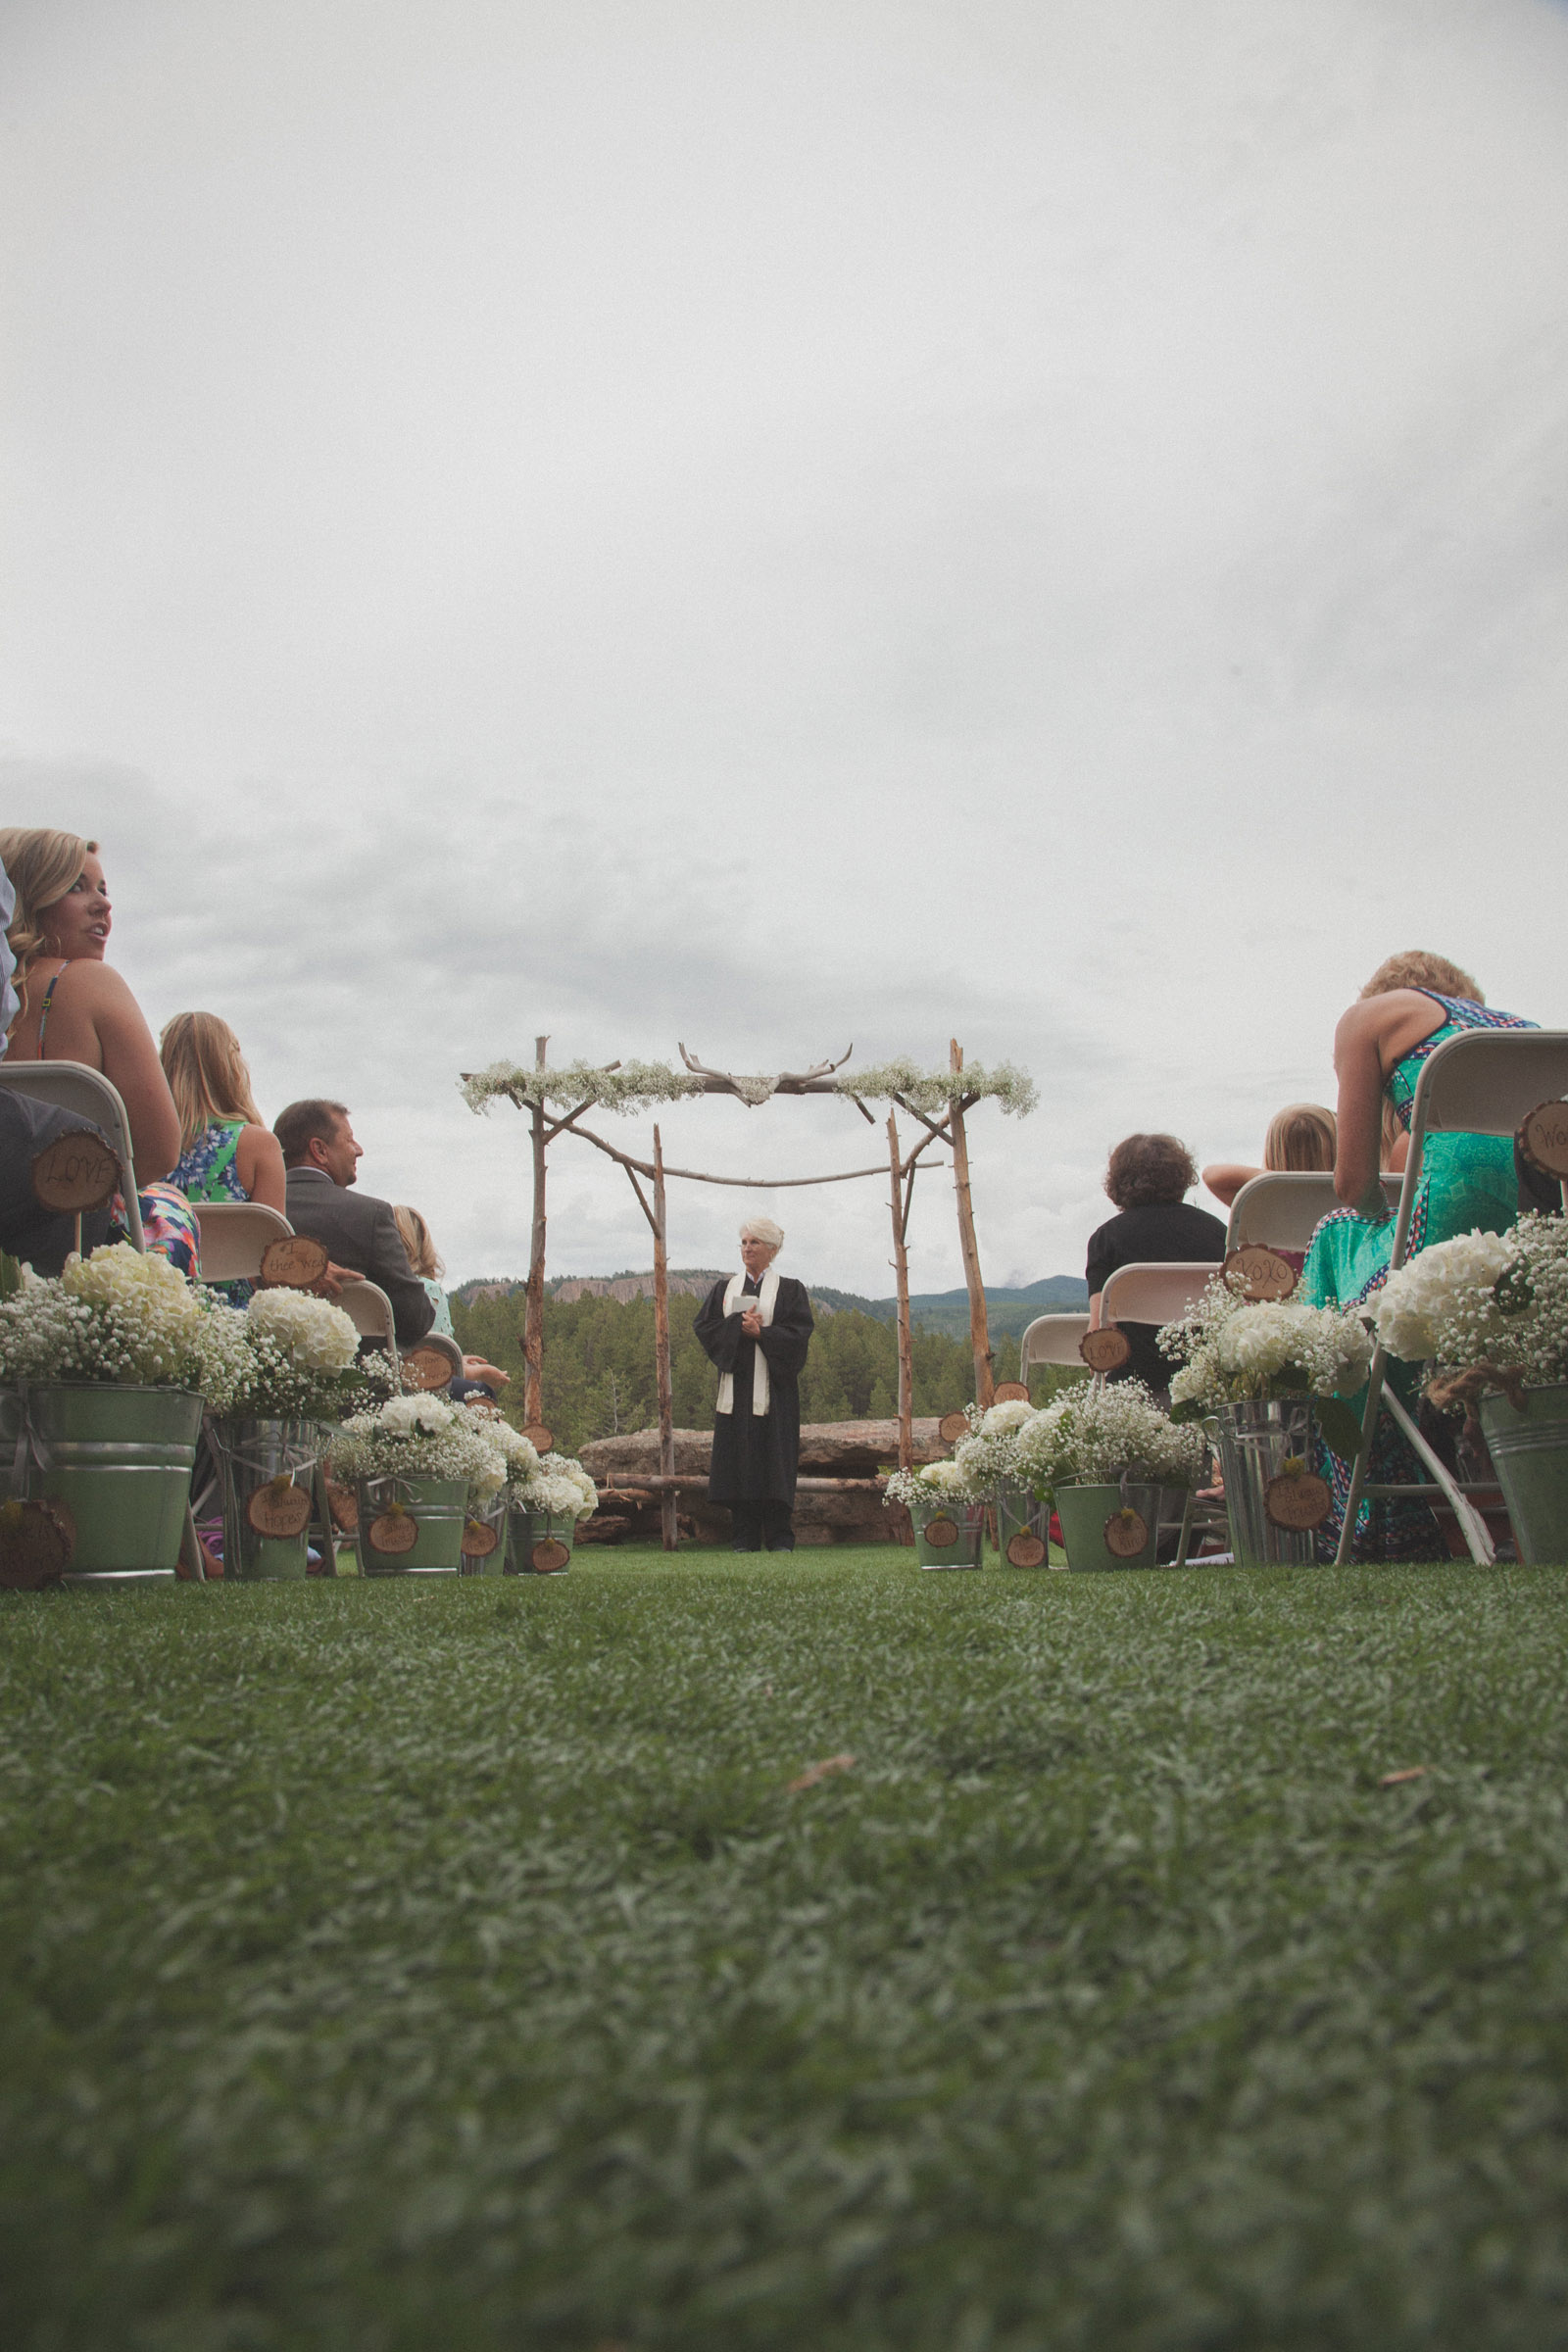 118-wedding-ideas-ideas-wedding-forest-mason-jars-backdrop-colorado-mancos-ceremony